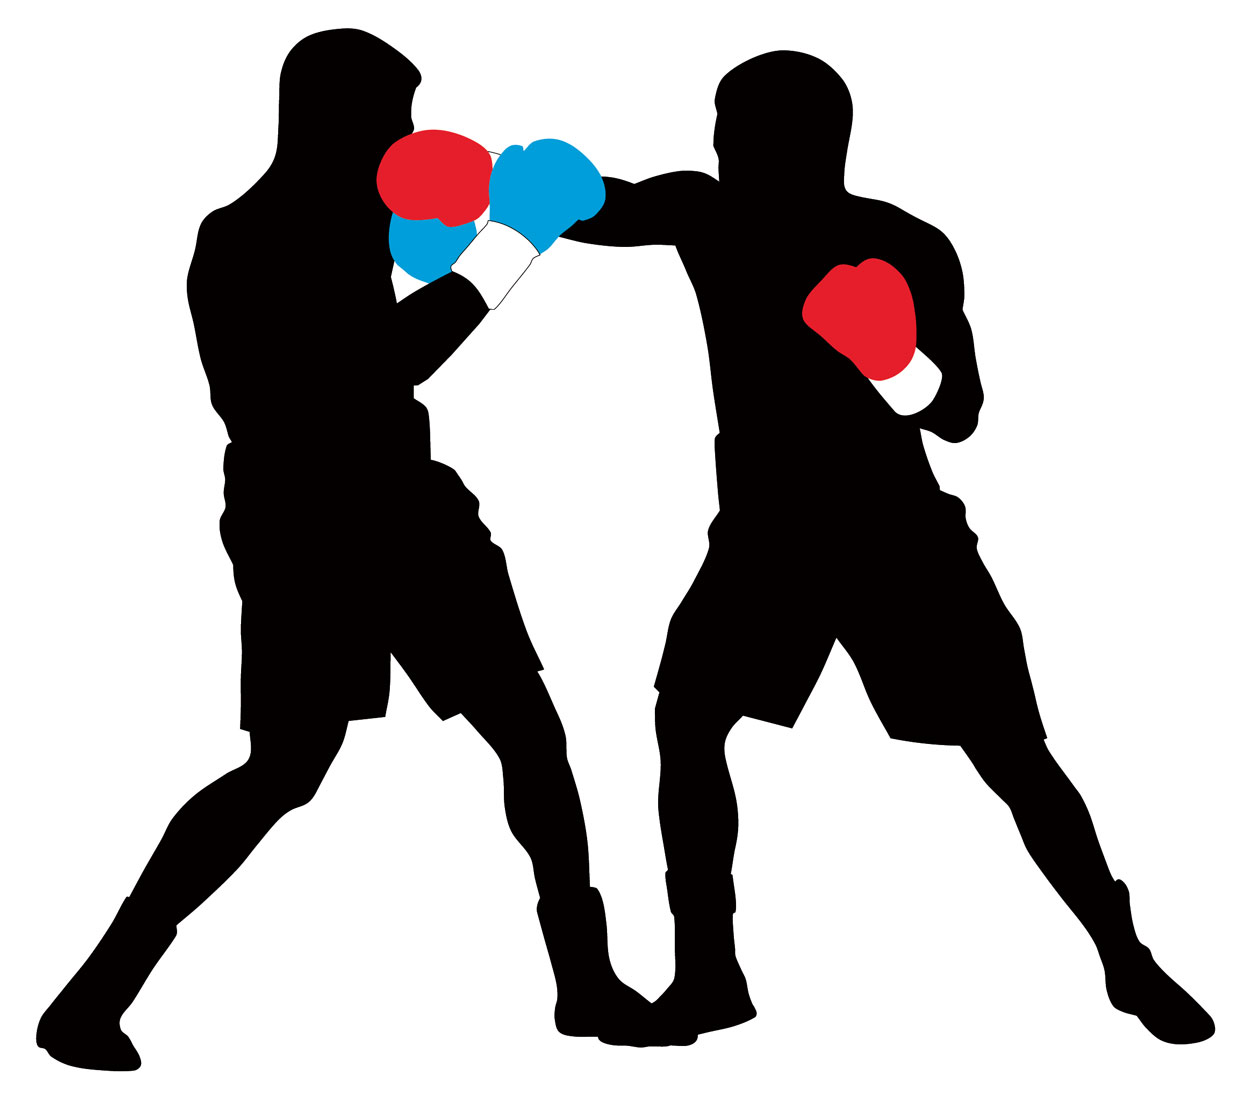 http://www.clipartkid.com/images/271/free-boxing-silhouette-free-cliparts-that-you-can-download-to-you-IWPPkF-clipart.jpeg